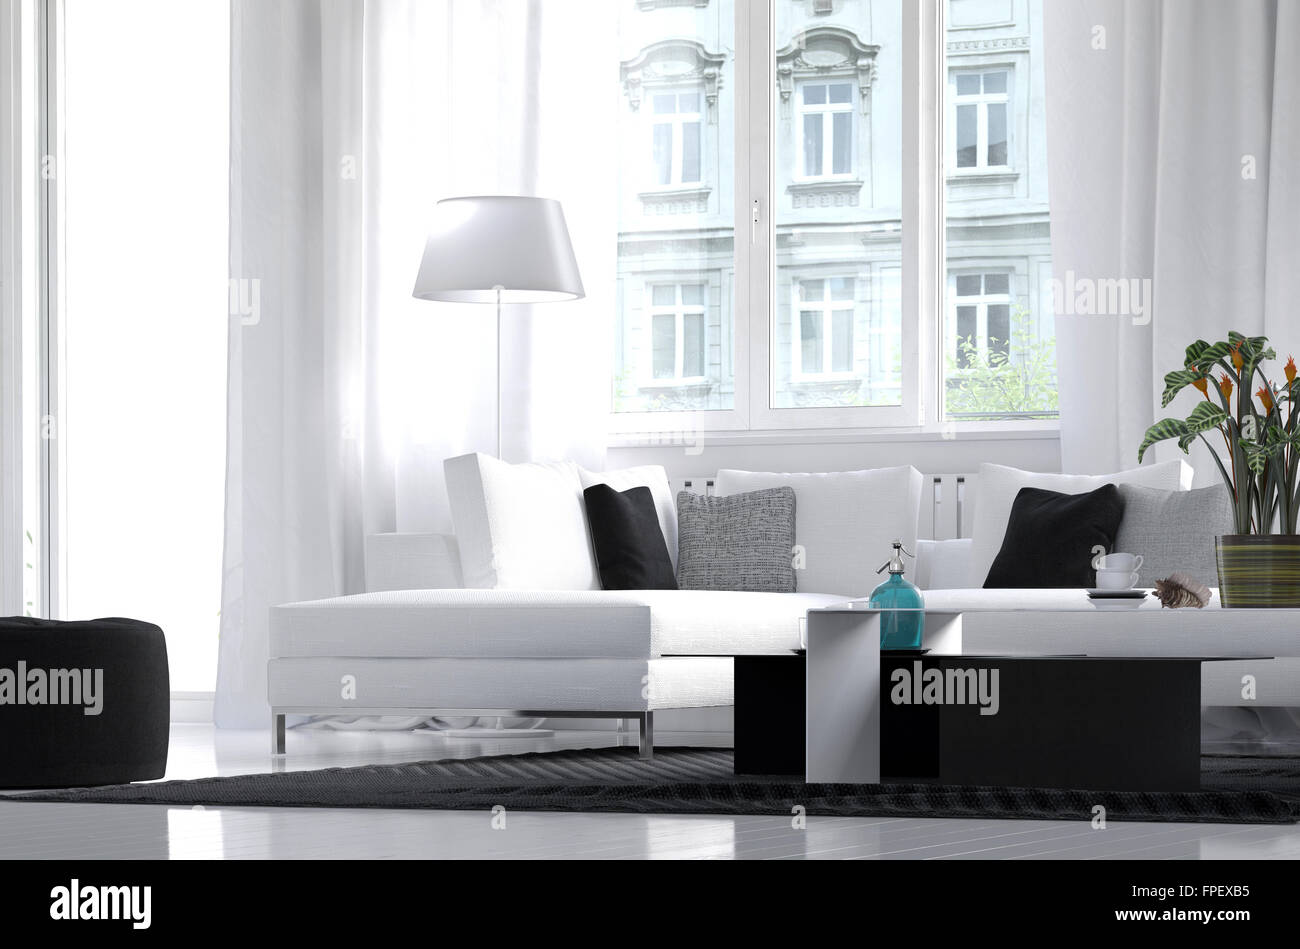 moderne wohnung wohnzimmer interieur mit wei em dekor und schwarzen akzenten in die m bel mit. Black Bedroom Furniture Sets. Home Design Ideas